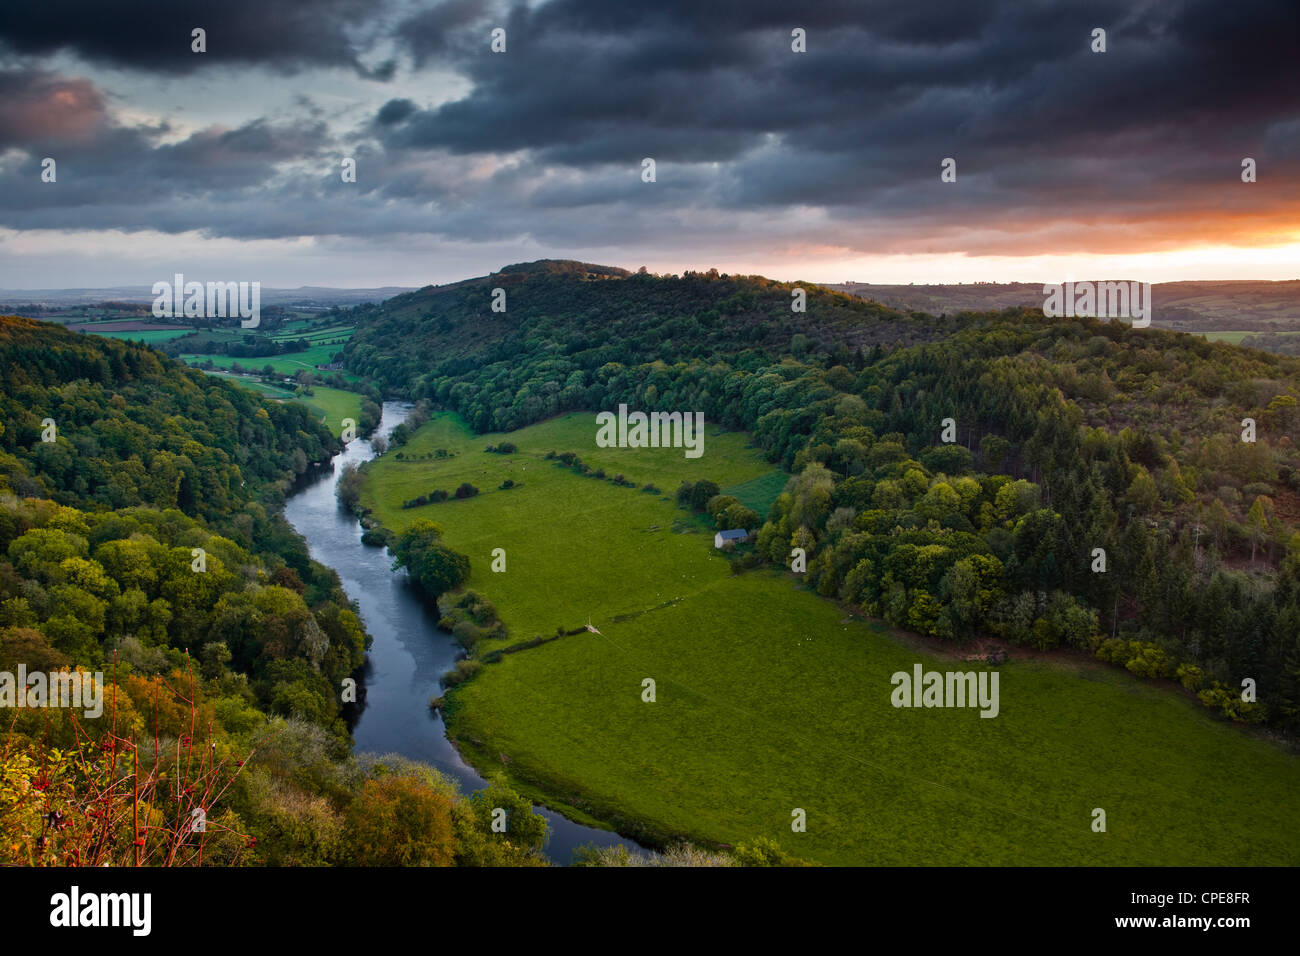 The breaking dawn sky and the River Wye from Symonds Yat rock, Herefordshire, England, United Kingdom, Europe - Stock Image